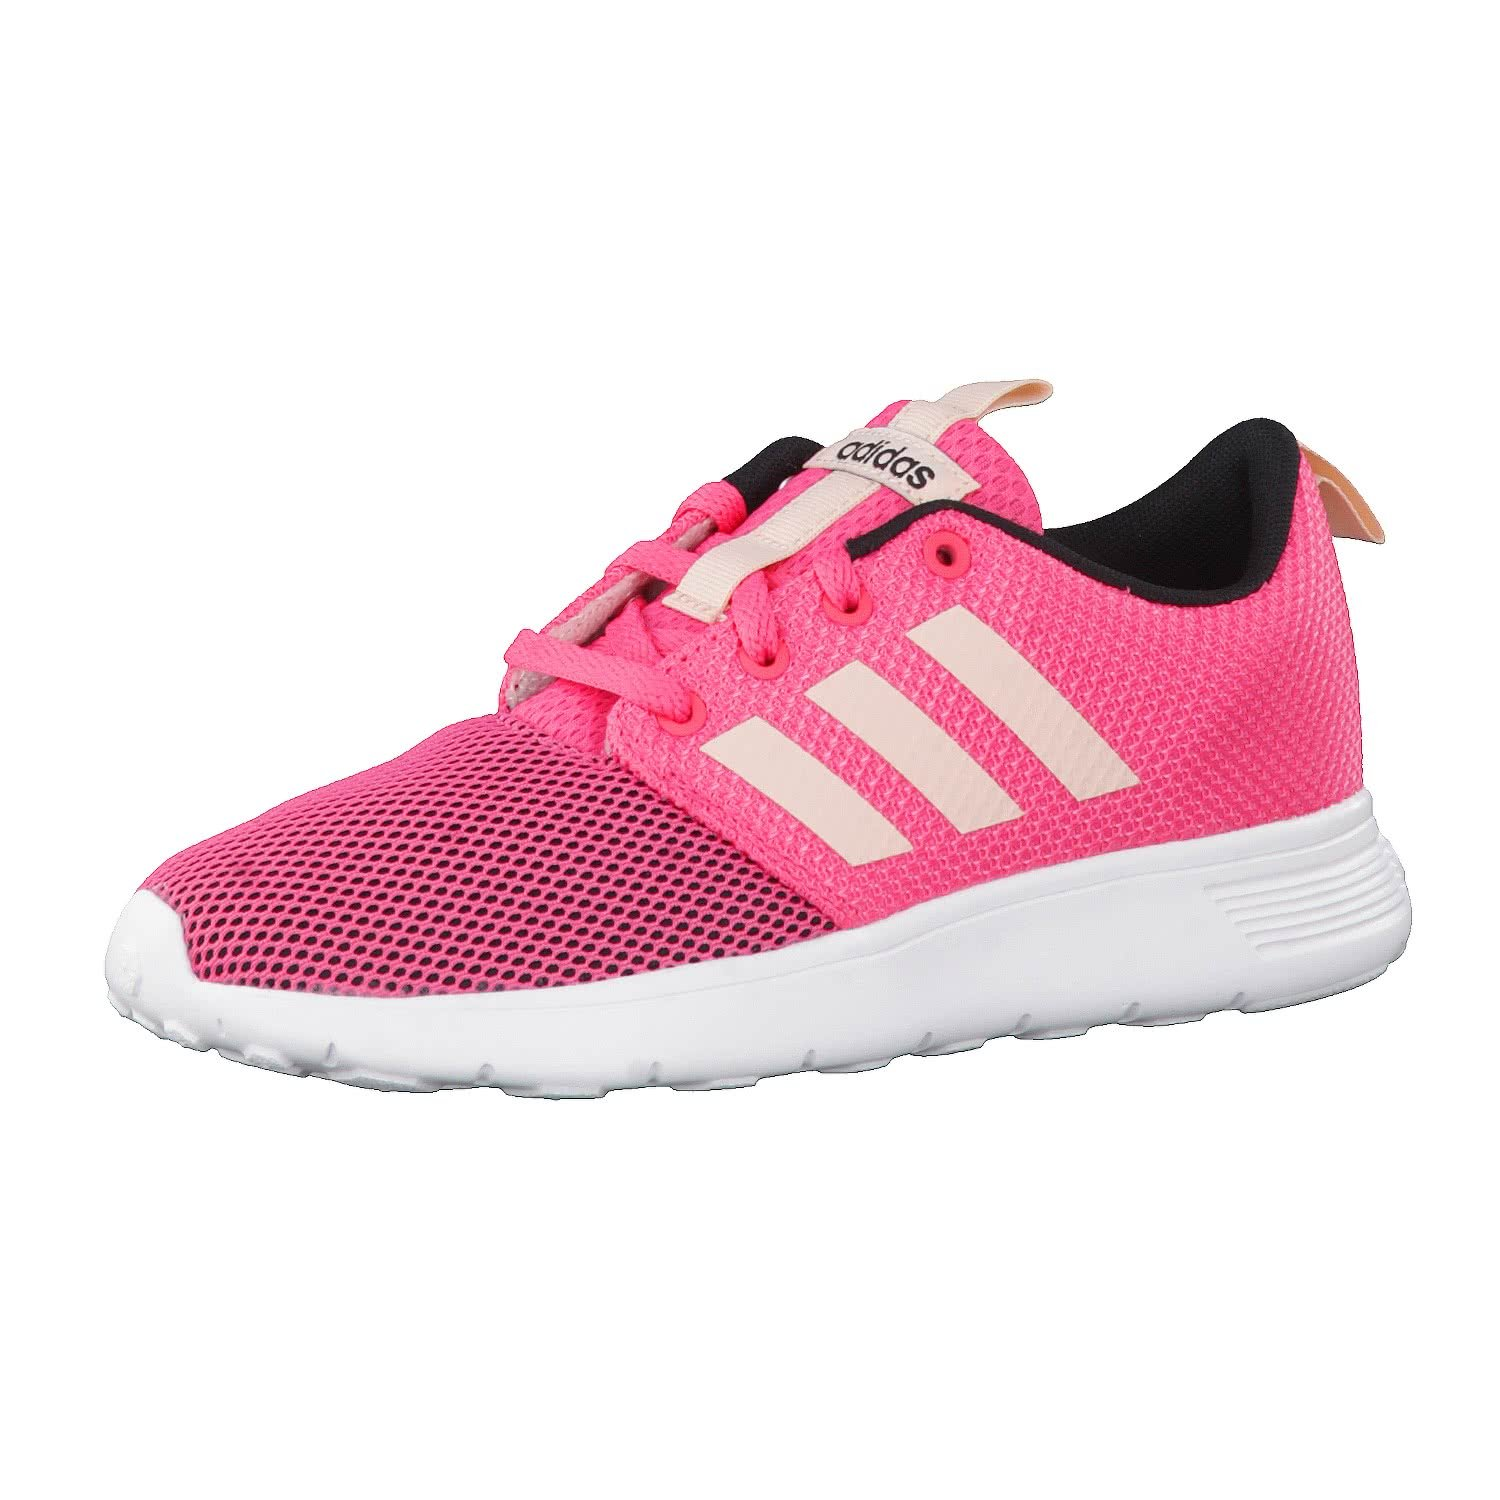 info for f1132 29706 adidas Swifty K, Chaussures de Sport Mixte Enfant adidas Amazon.fr  Chaussures et Sacs